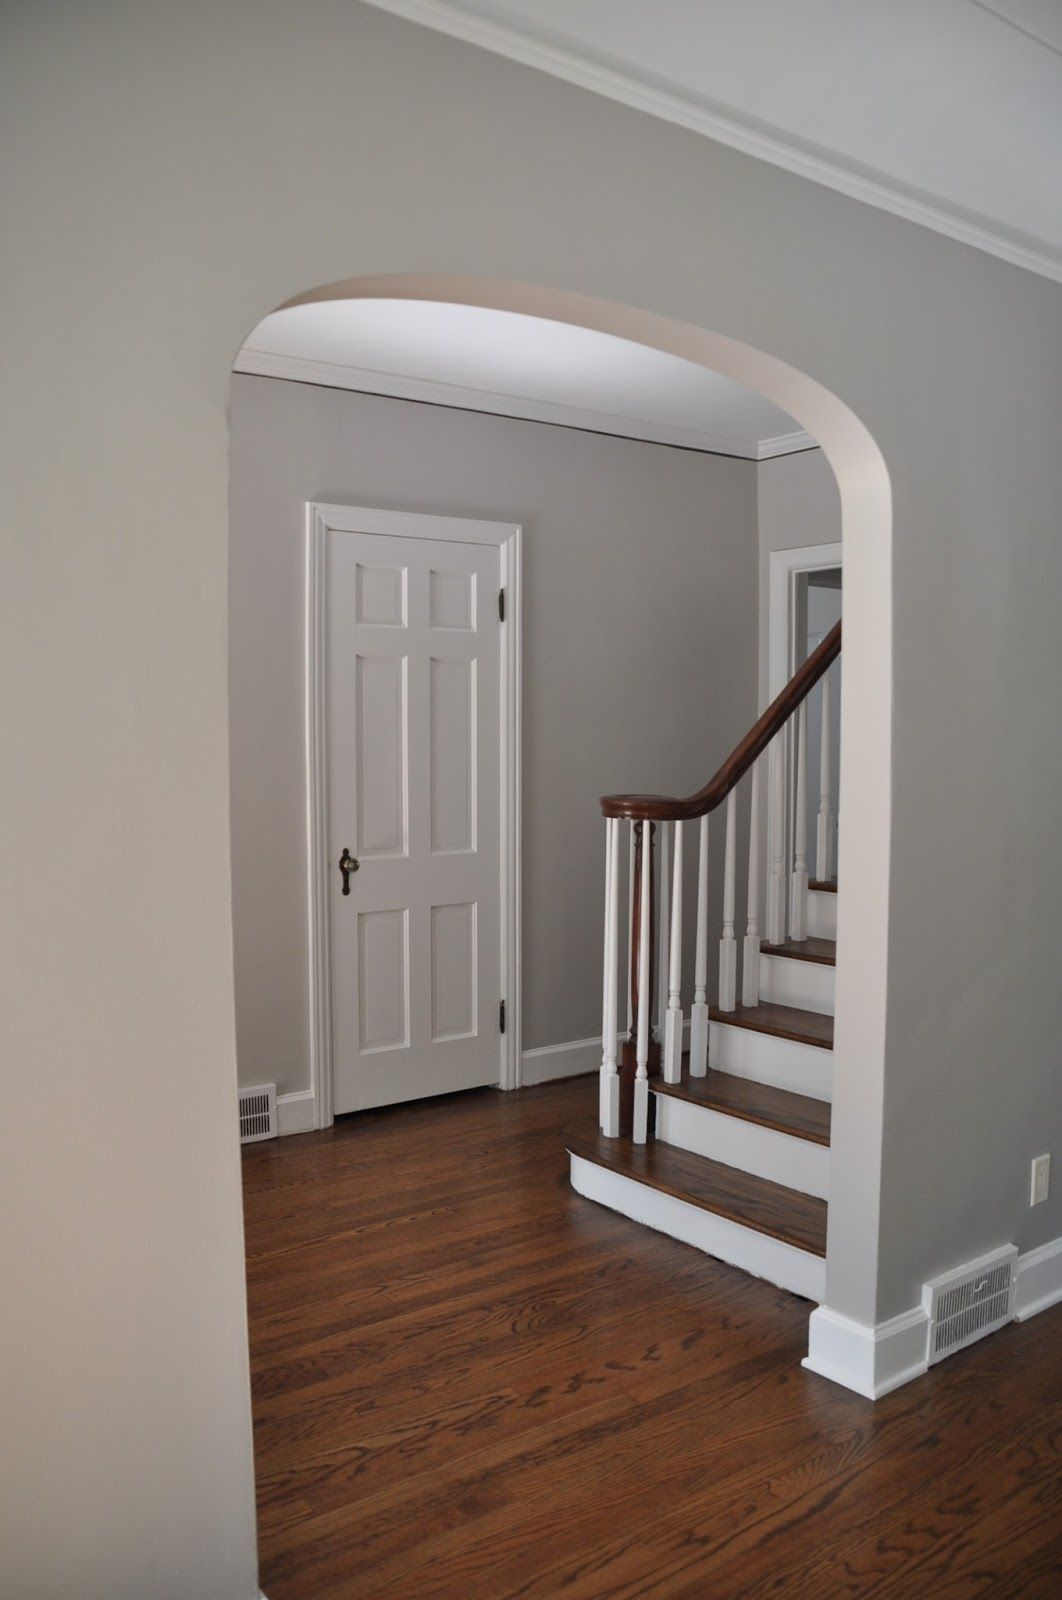 The Crawford Clan Foyer Before Progress And Plan Paint Colors For Living Room Home Decor Best Wall Colors